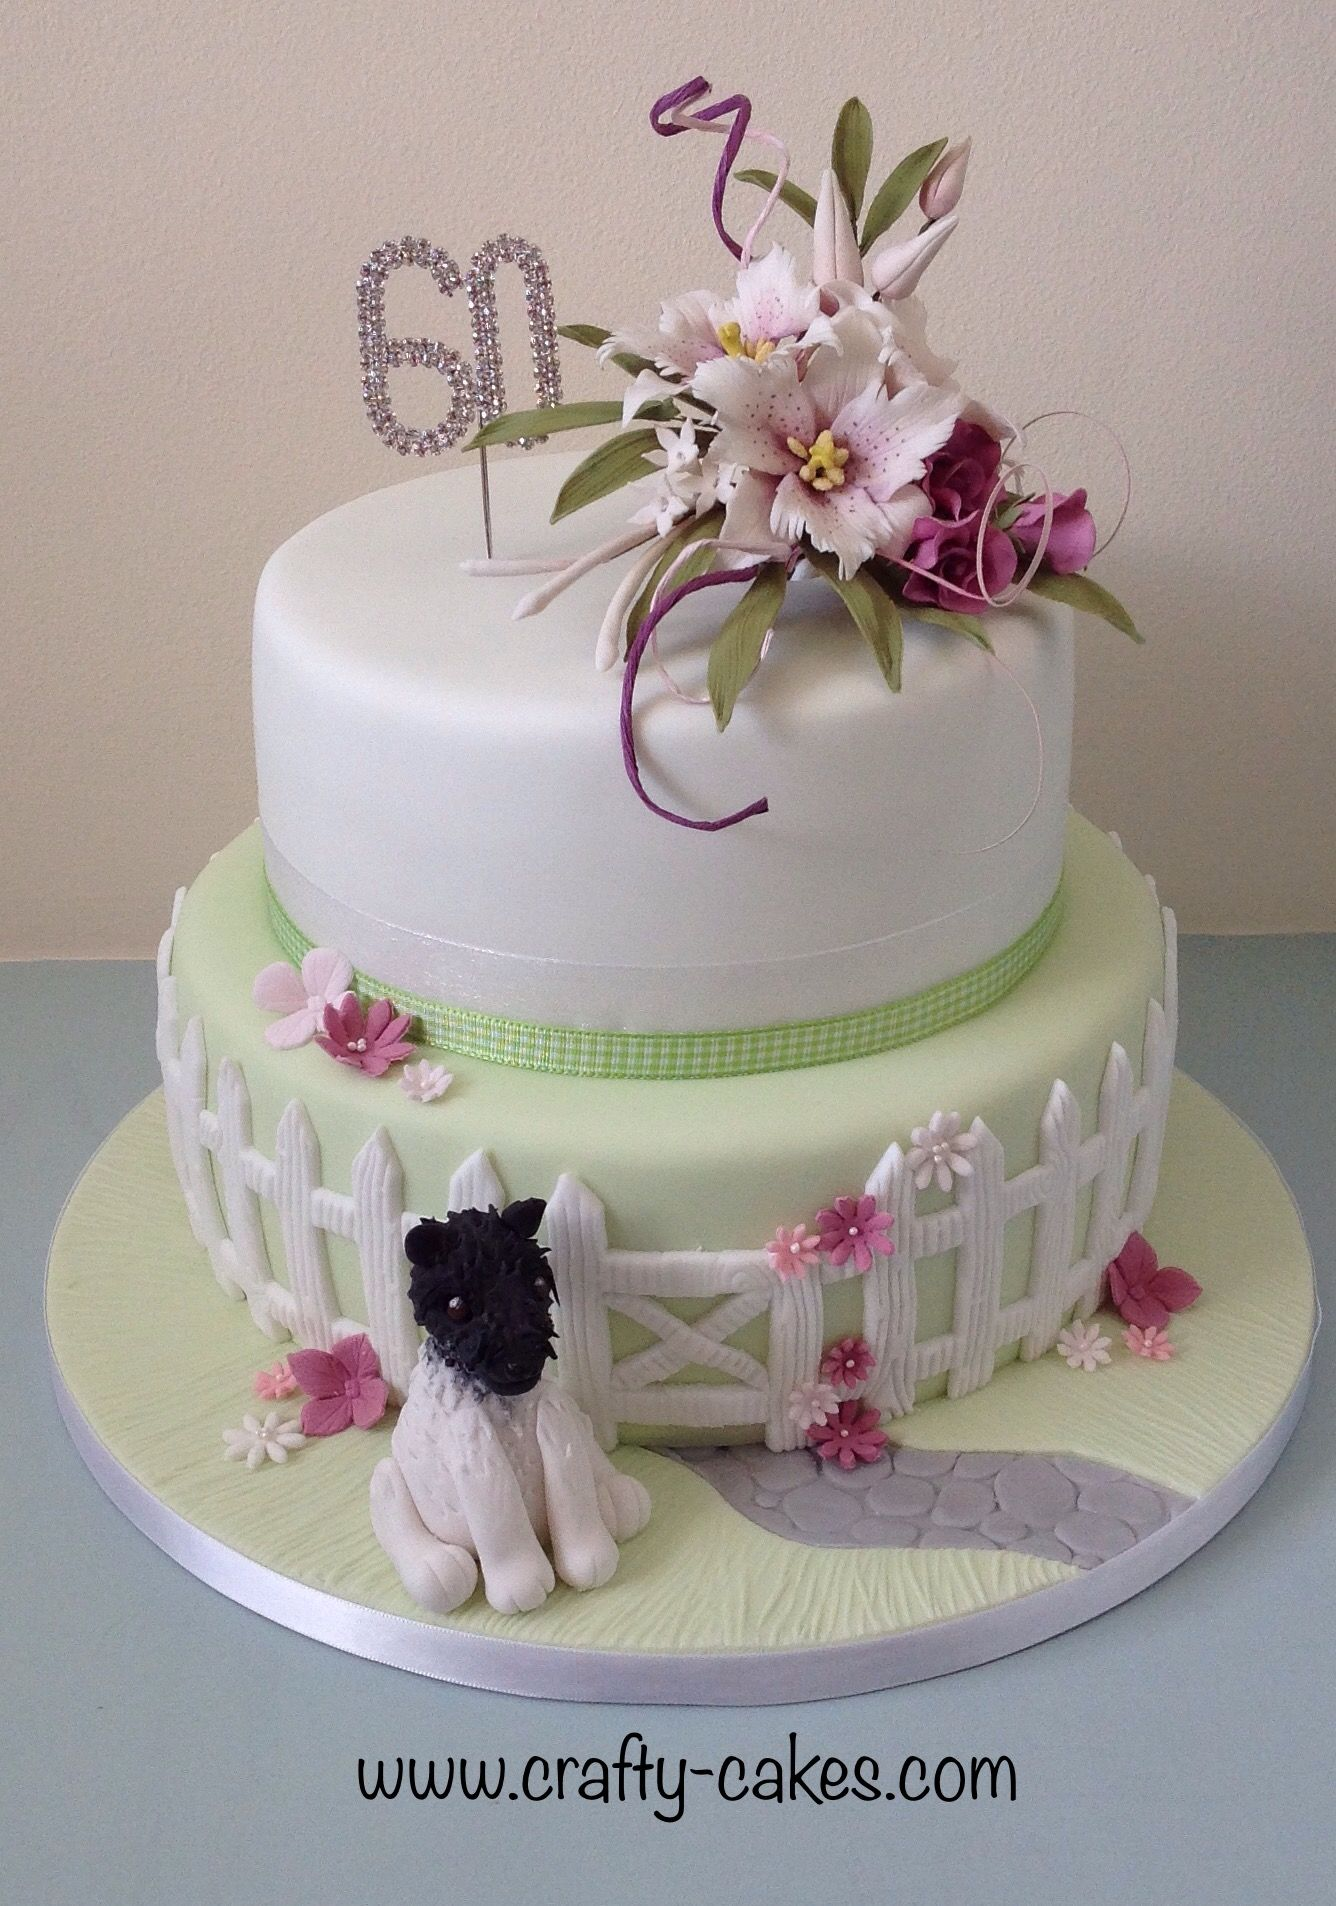 2 Tier 60th Birthday Cake With Sugar Flower Spray And Modelled Dog